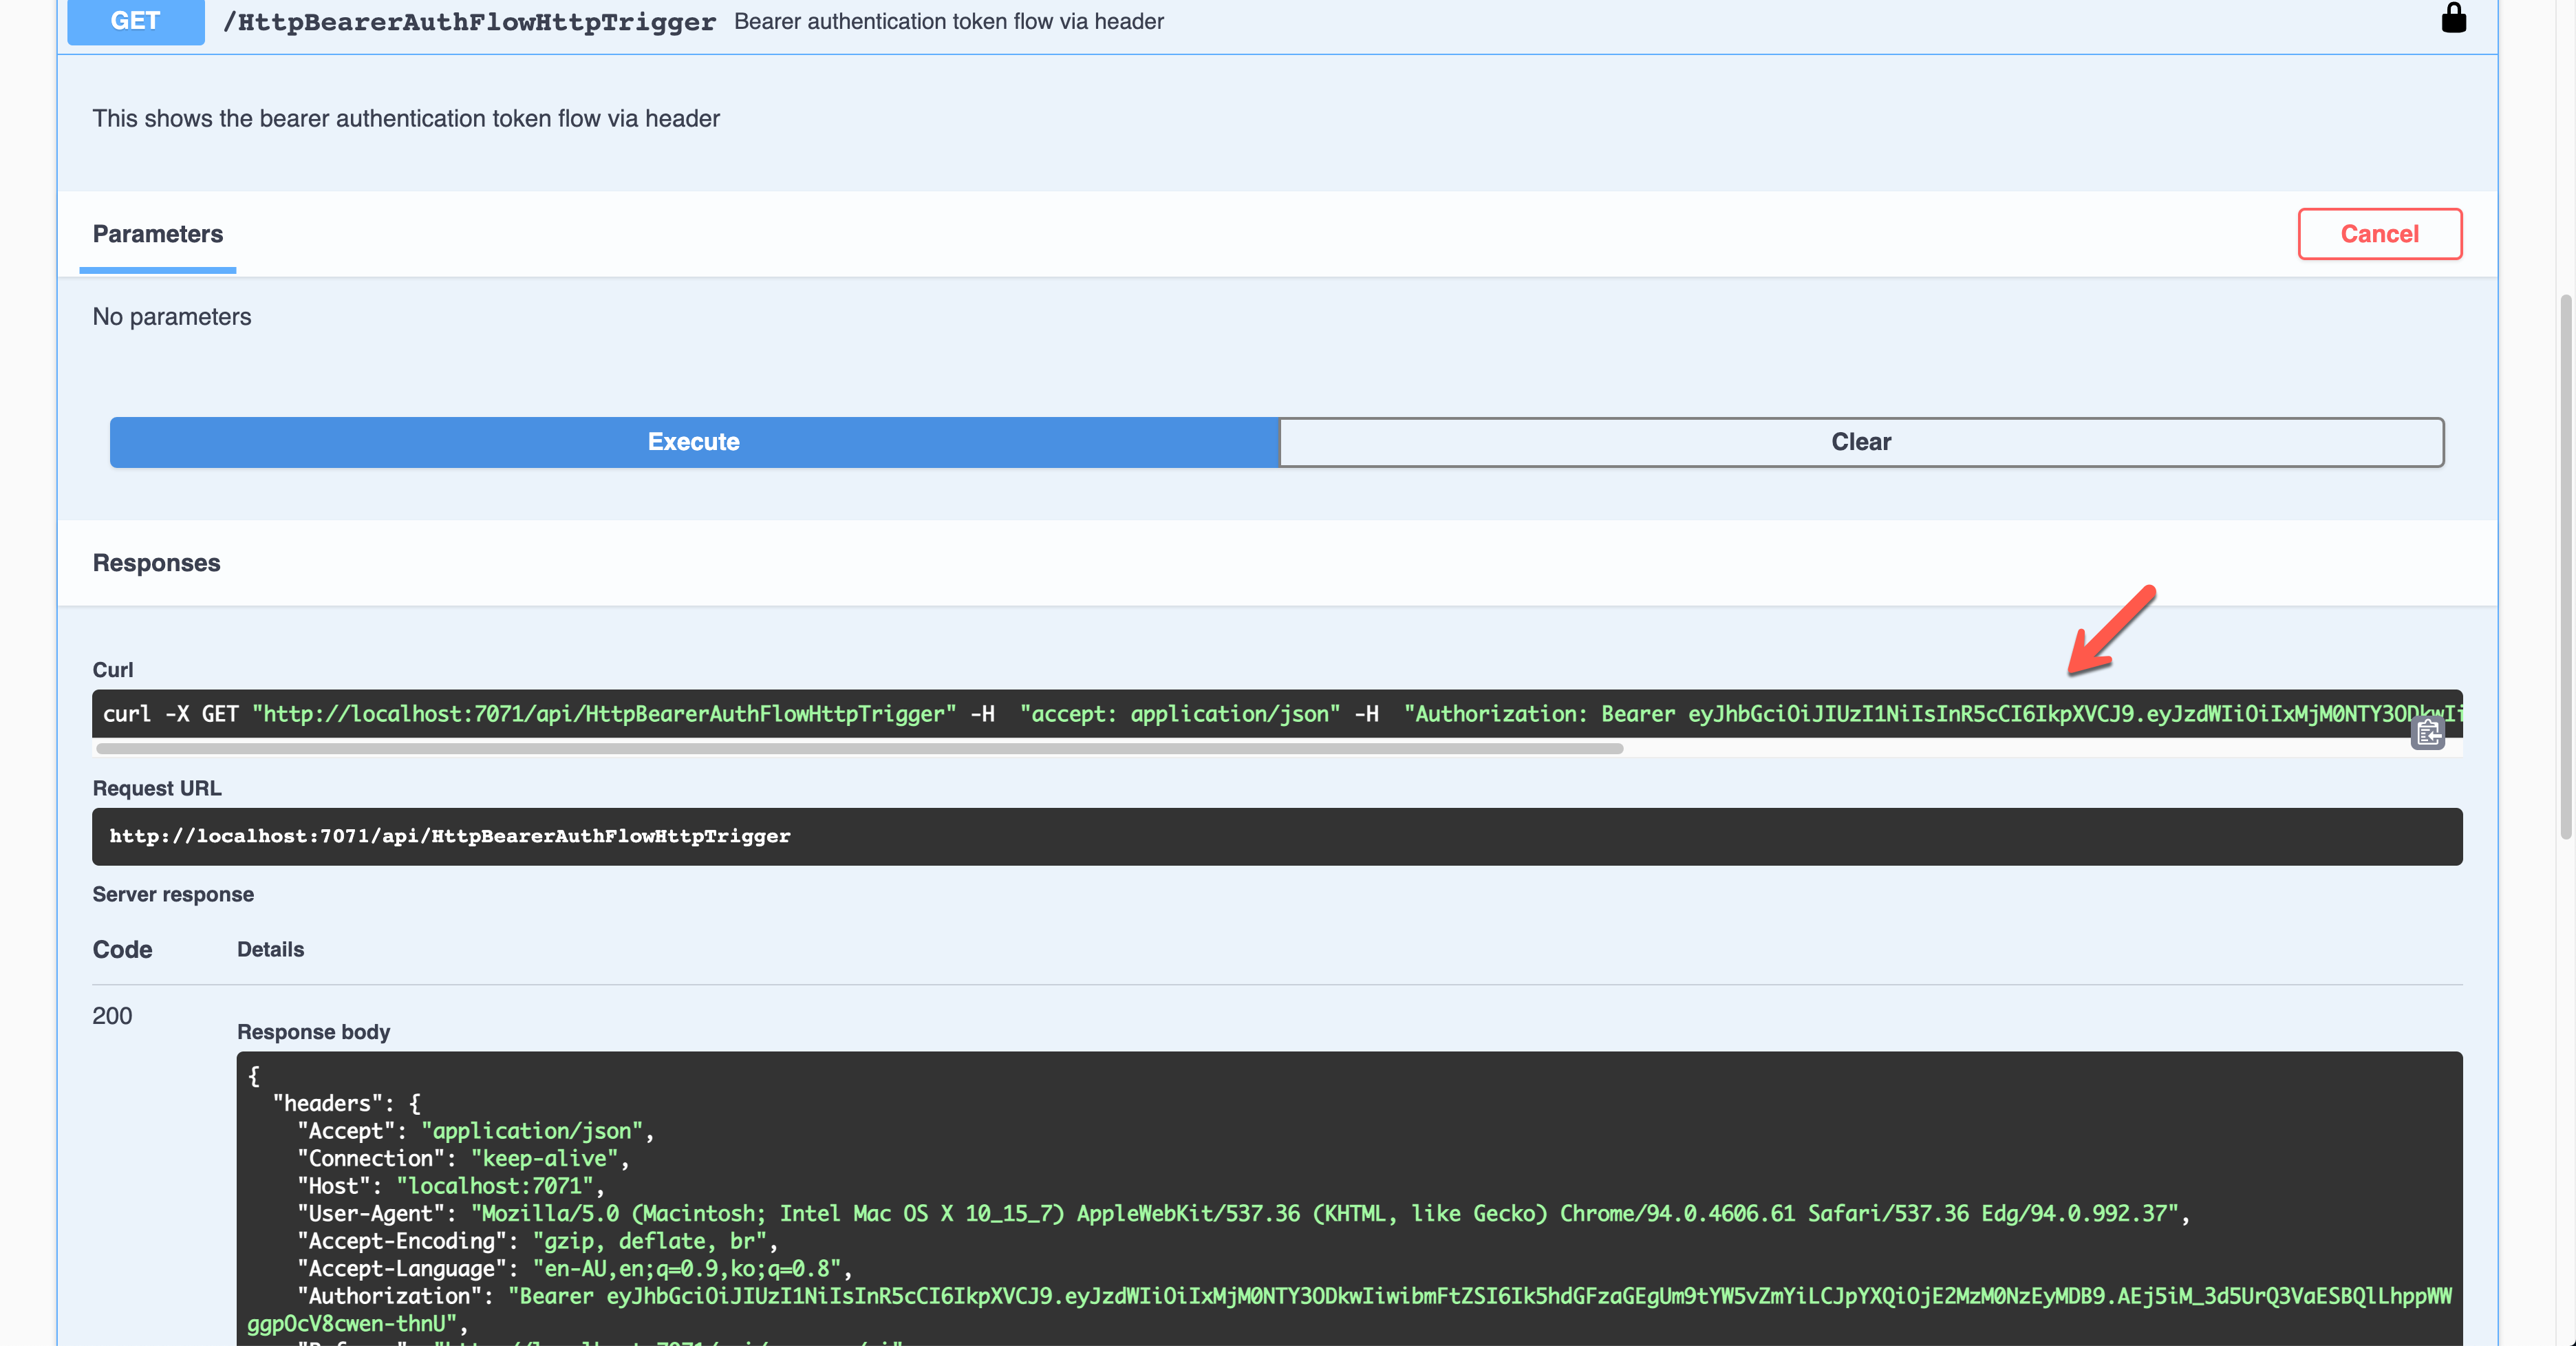 Swagger UI - Bearer Auth - Result